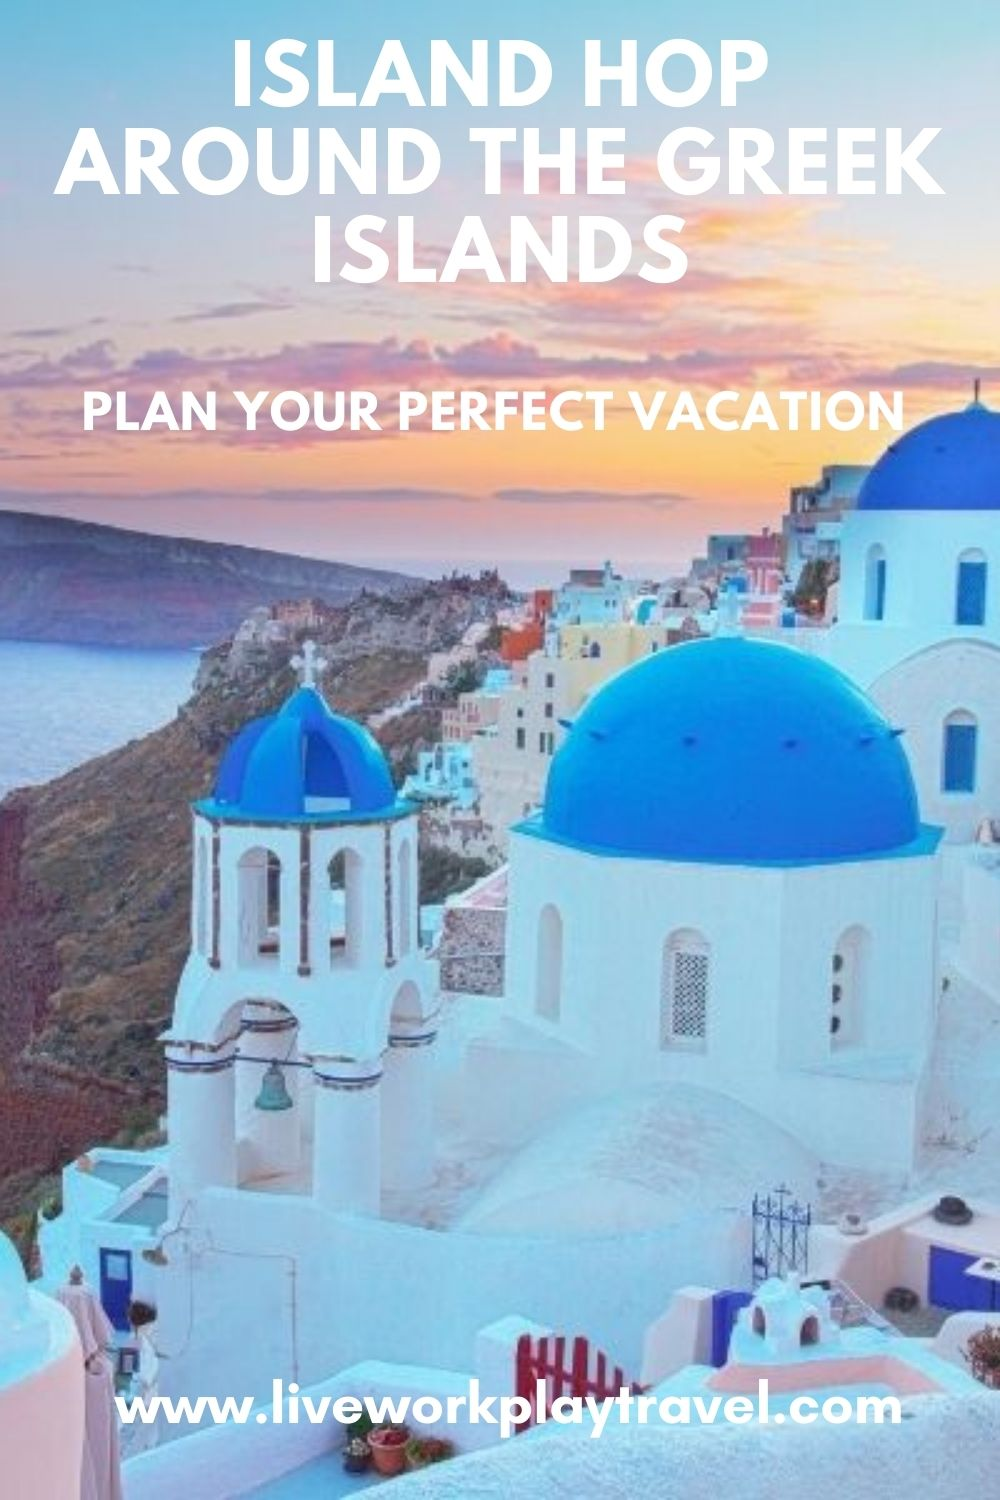 Santorini Is A Popular Island To Visit When Island Hopping The Greek Islands. Spend Your Days In Whitewashed Buildings Overlooking Crystal Clear Blue Waters.